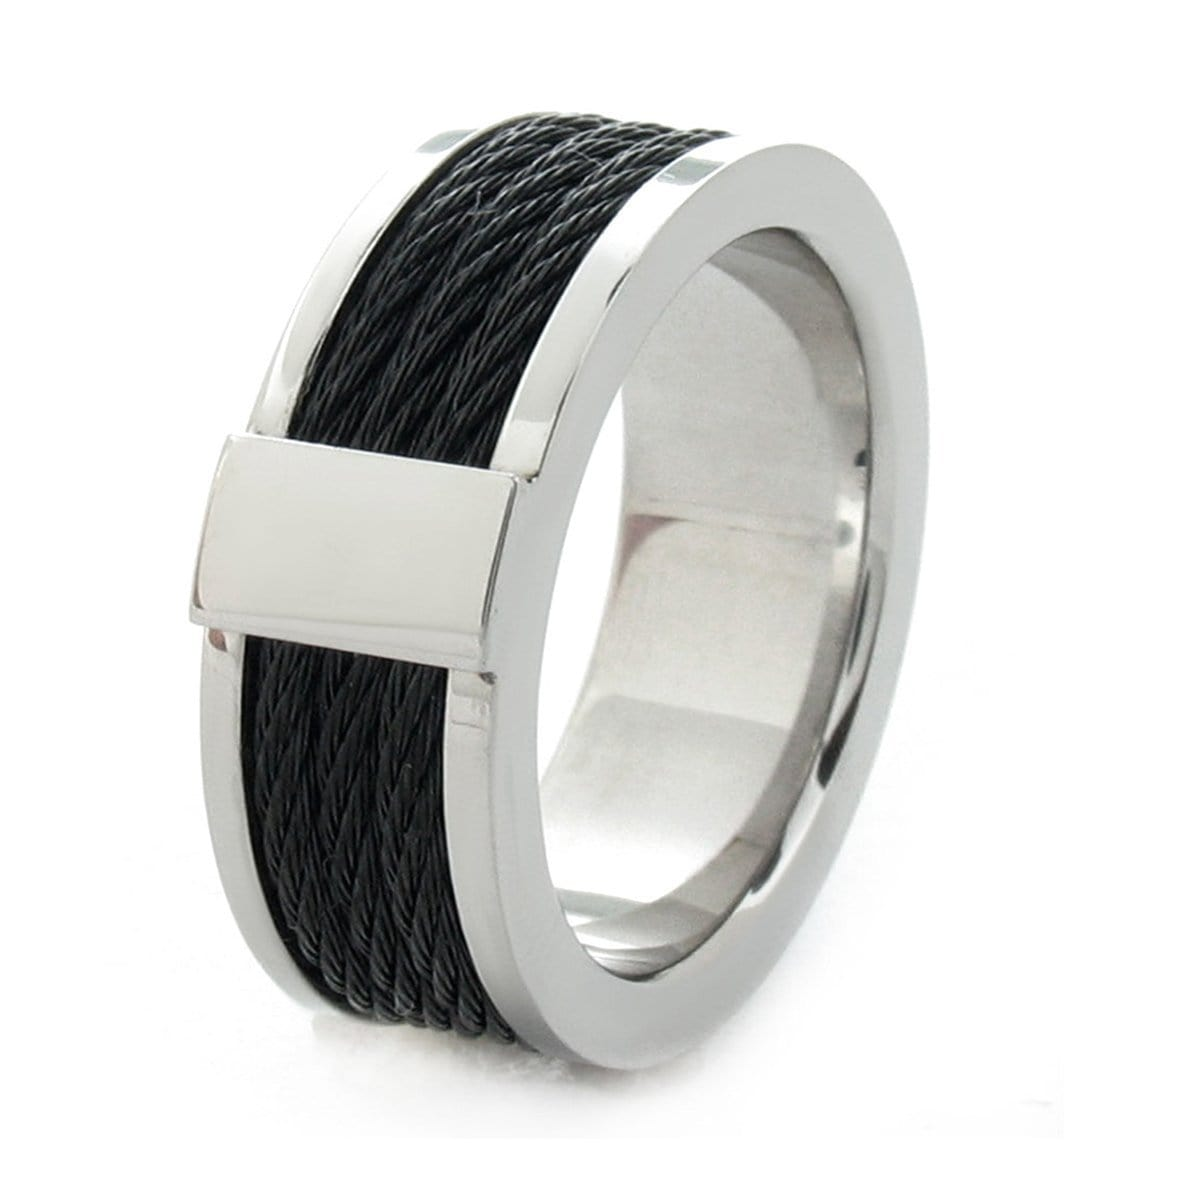 Black & Silver Stainless Steel Ring with Three Inlaid Cables